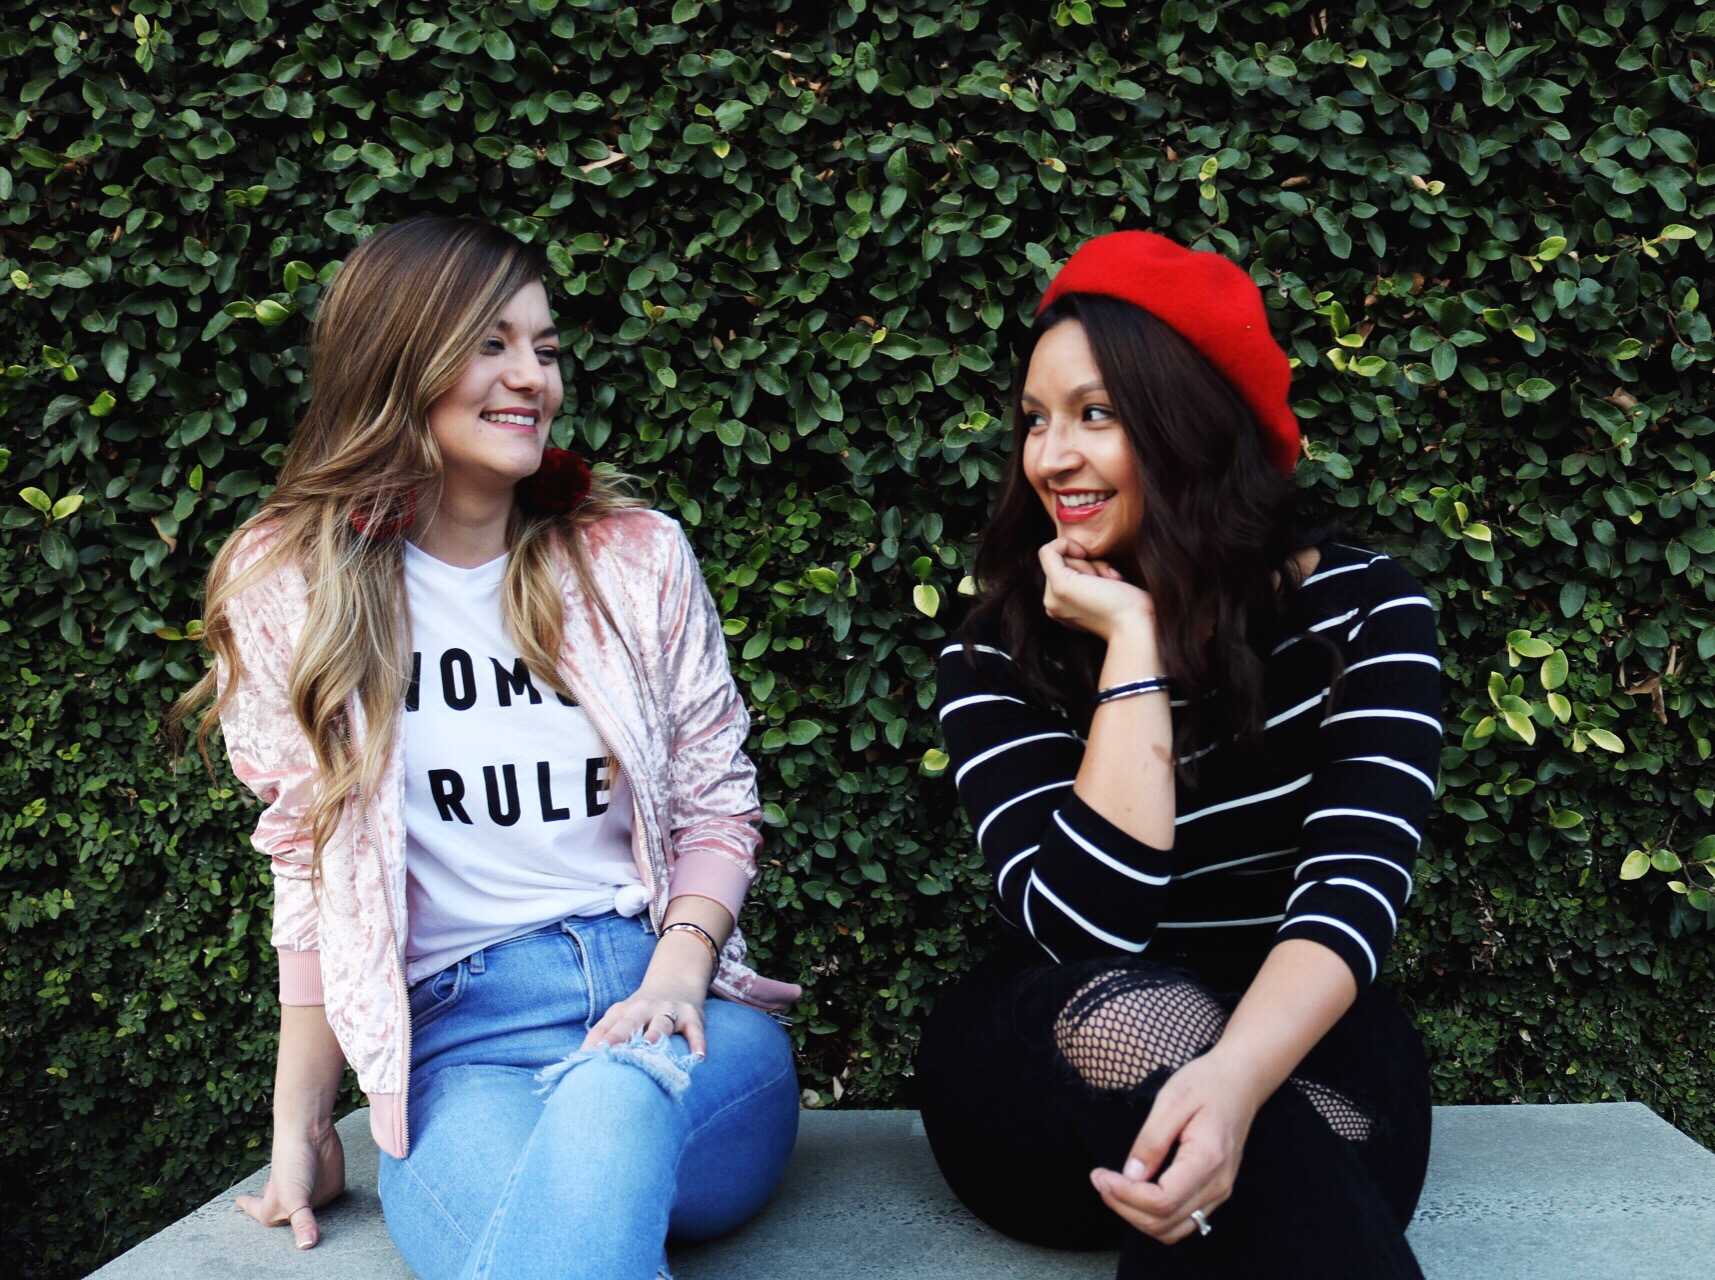 Women Rule Forever 21 Tee, Fish net black denim, distressed light denim, pink velvet bomber, red beret, maria shireen bracelet, Galentines Day